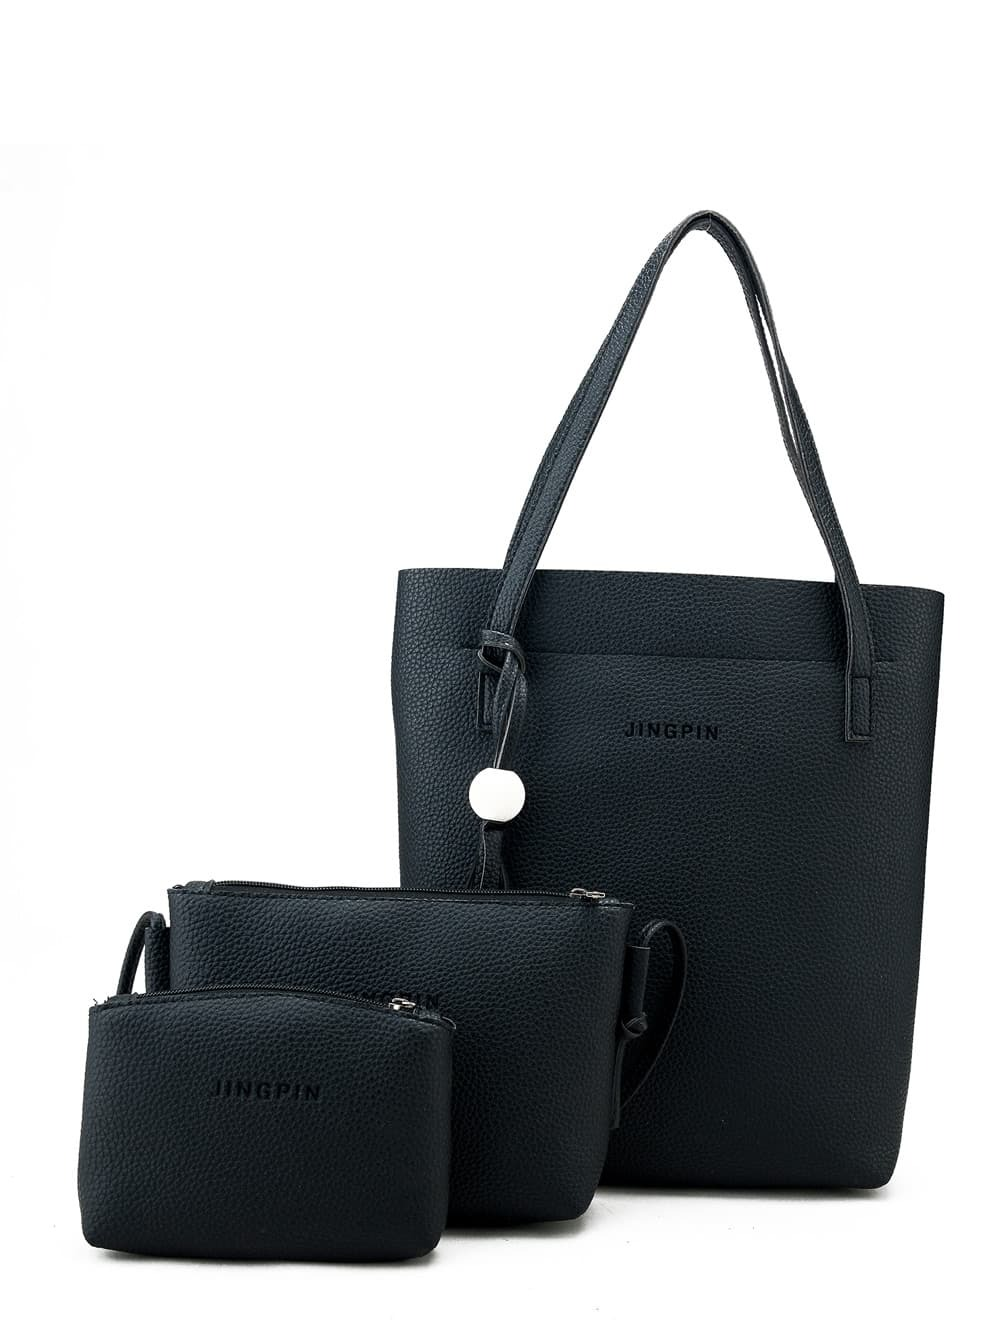 Tassel Detail Tote Bag With Clutch 3pcs patch detail combination bag with clutch bag